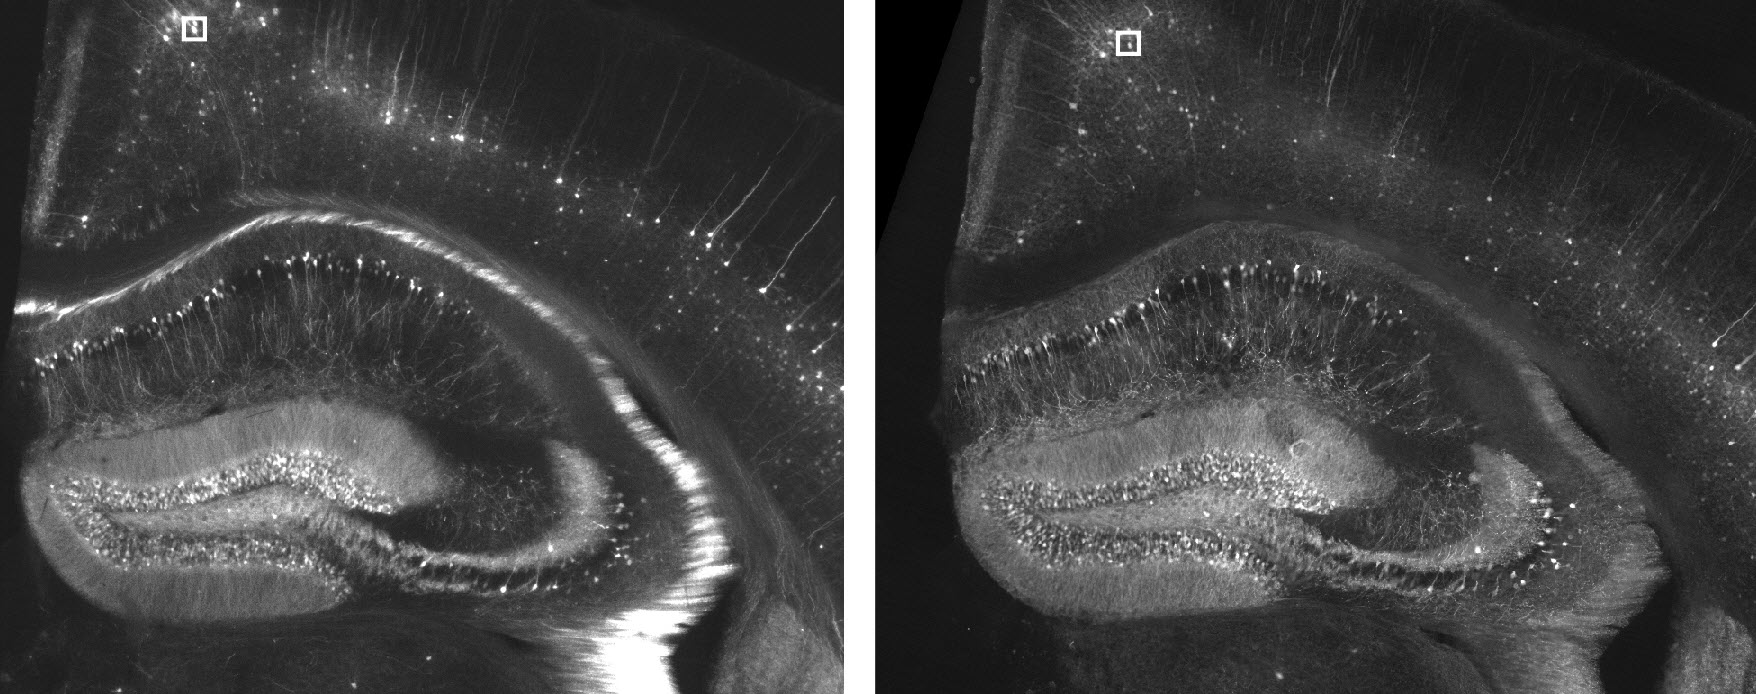 Expanding The Brain Achieves Super Resolution With